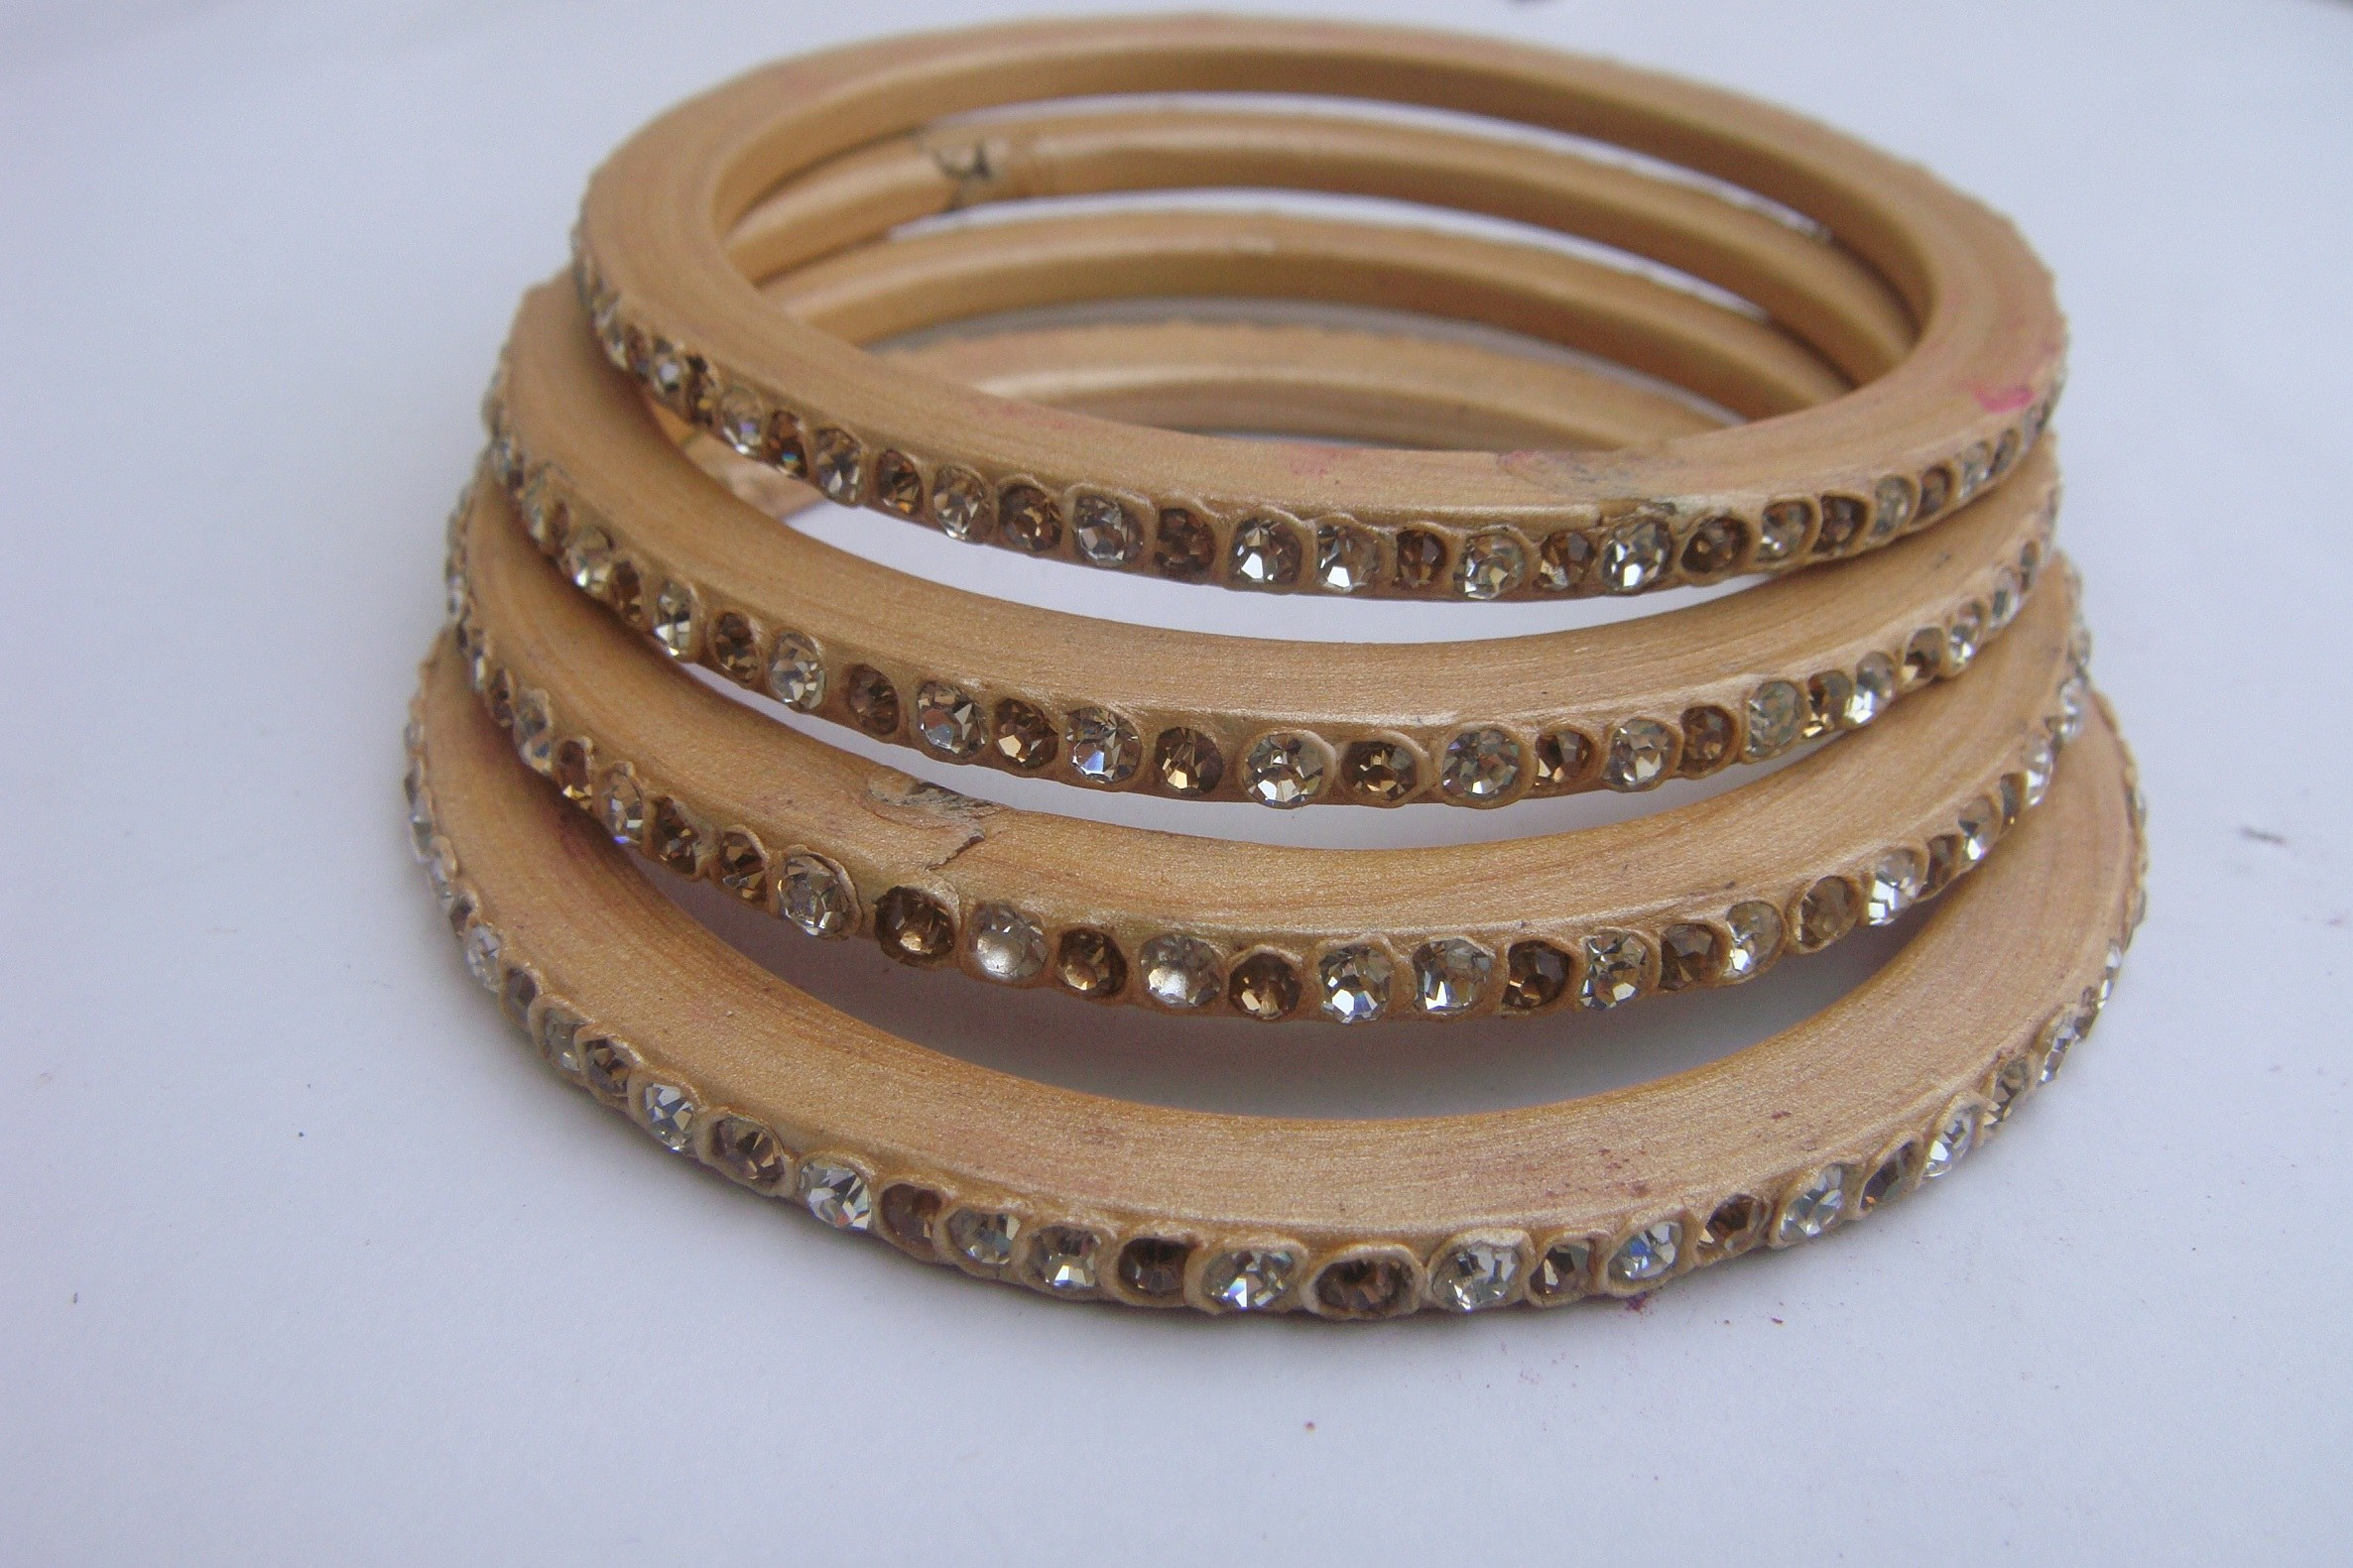 Rajasthani Lac Jewellery Rajasthani Lac Bangles Online Shopping